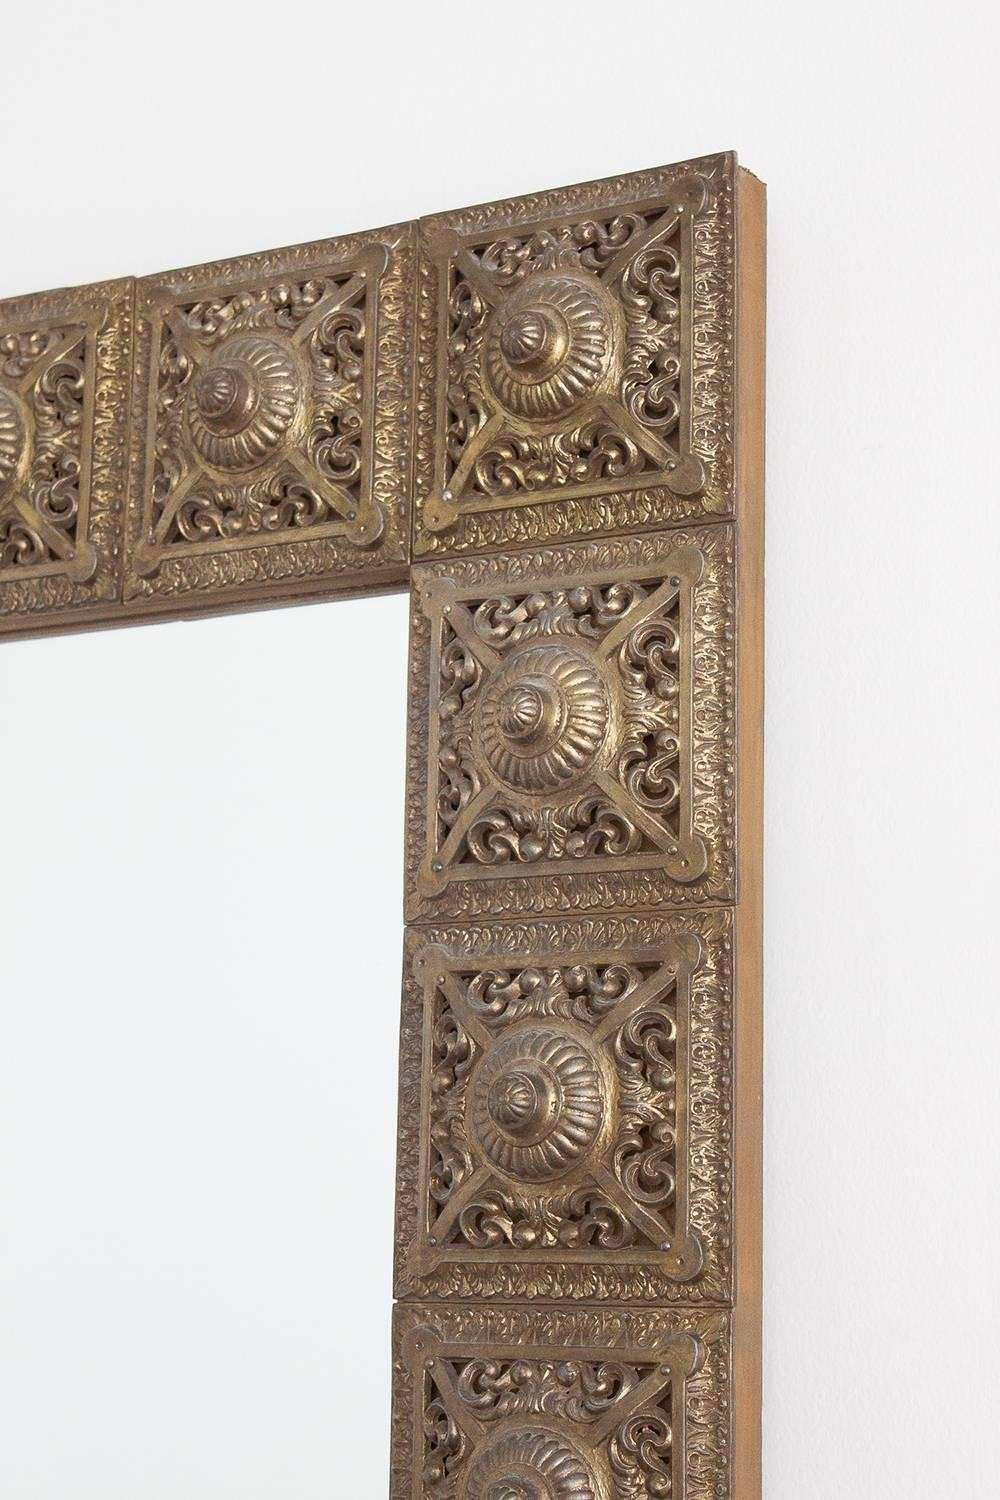 1960s Brass Medallion Framed Wall Mirror For Sale at 1stdibs